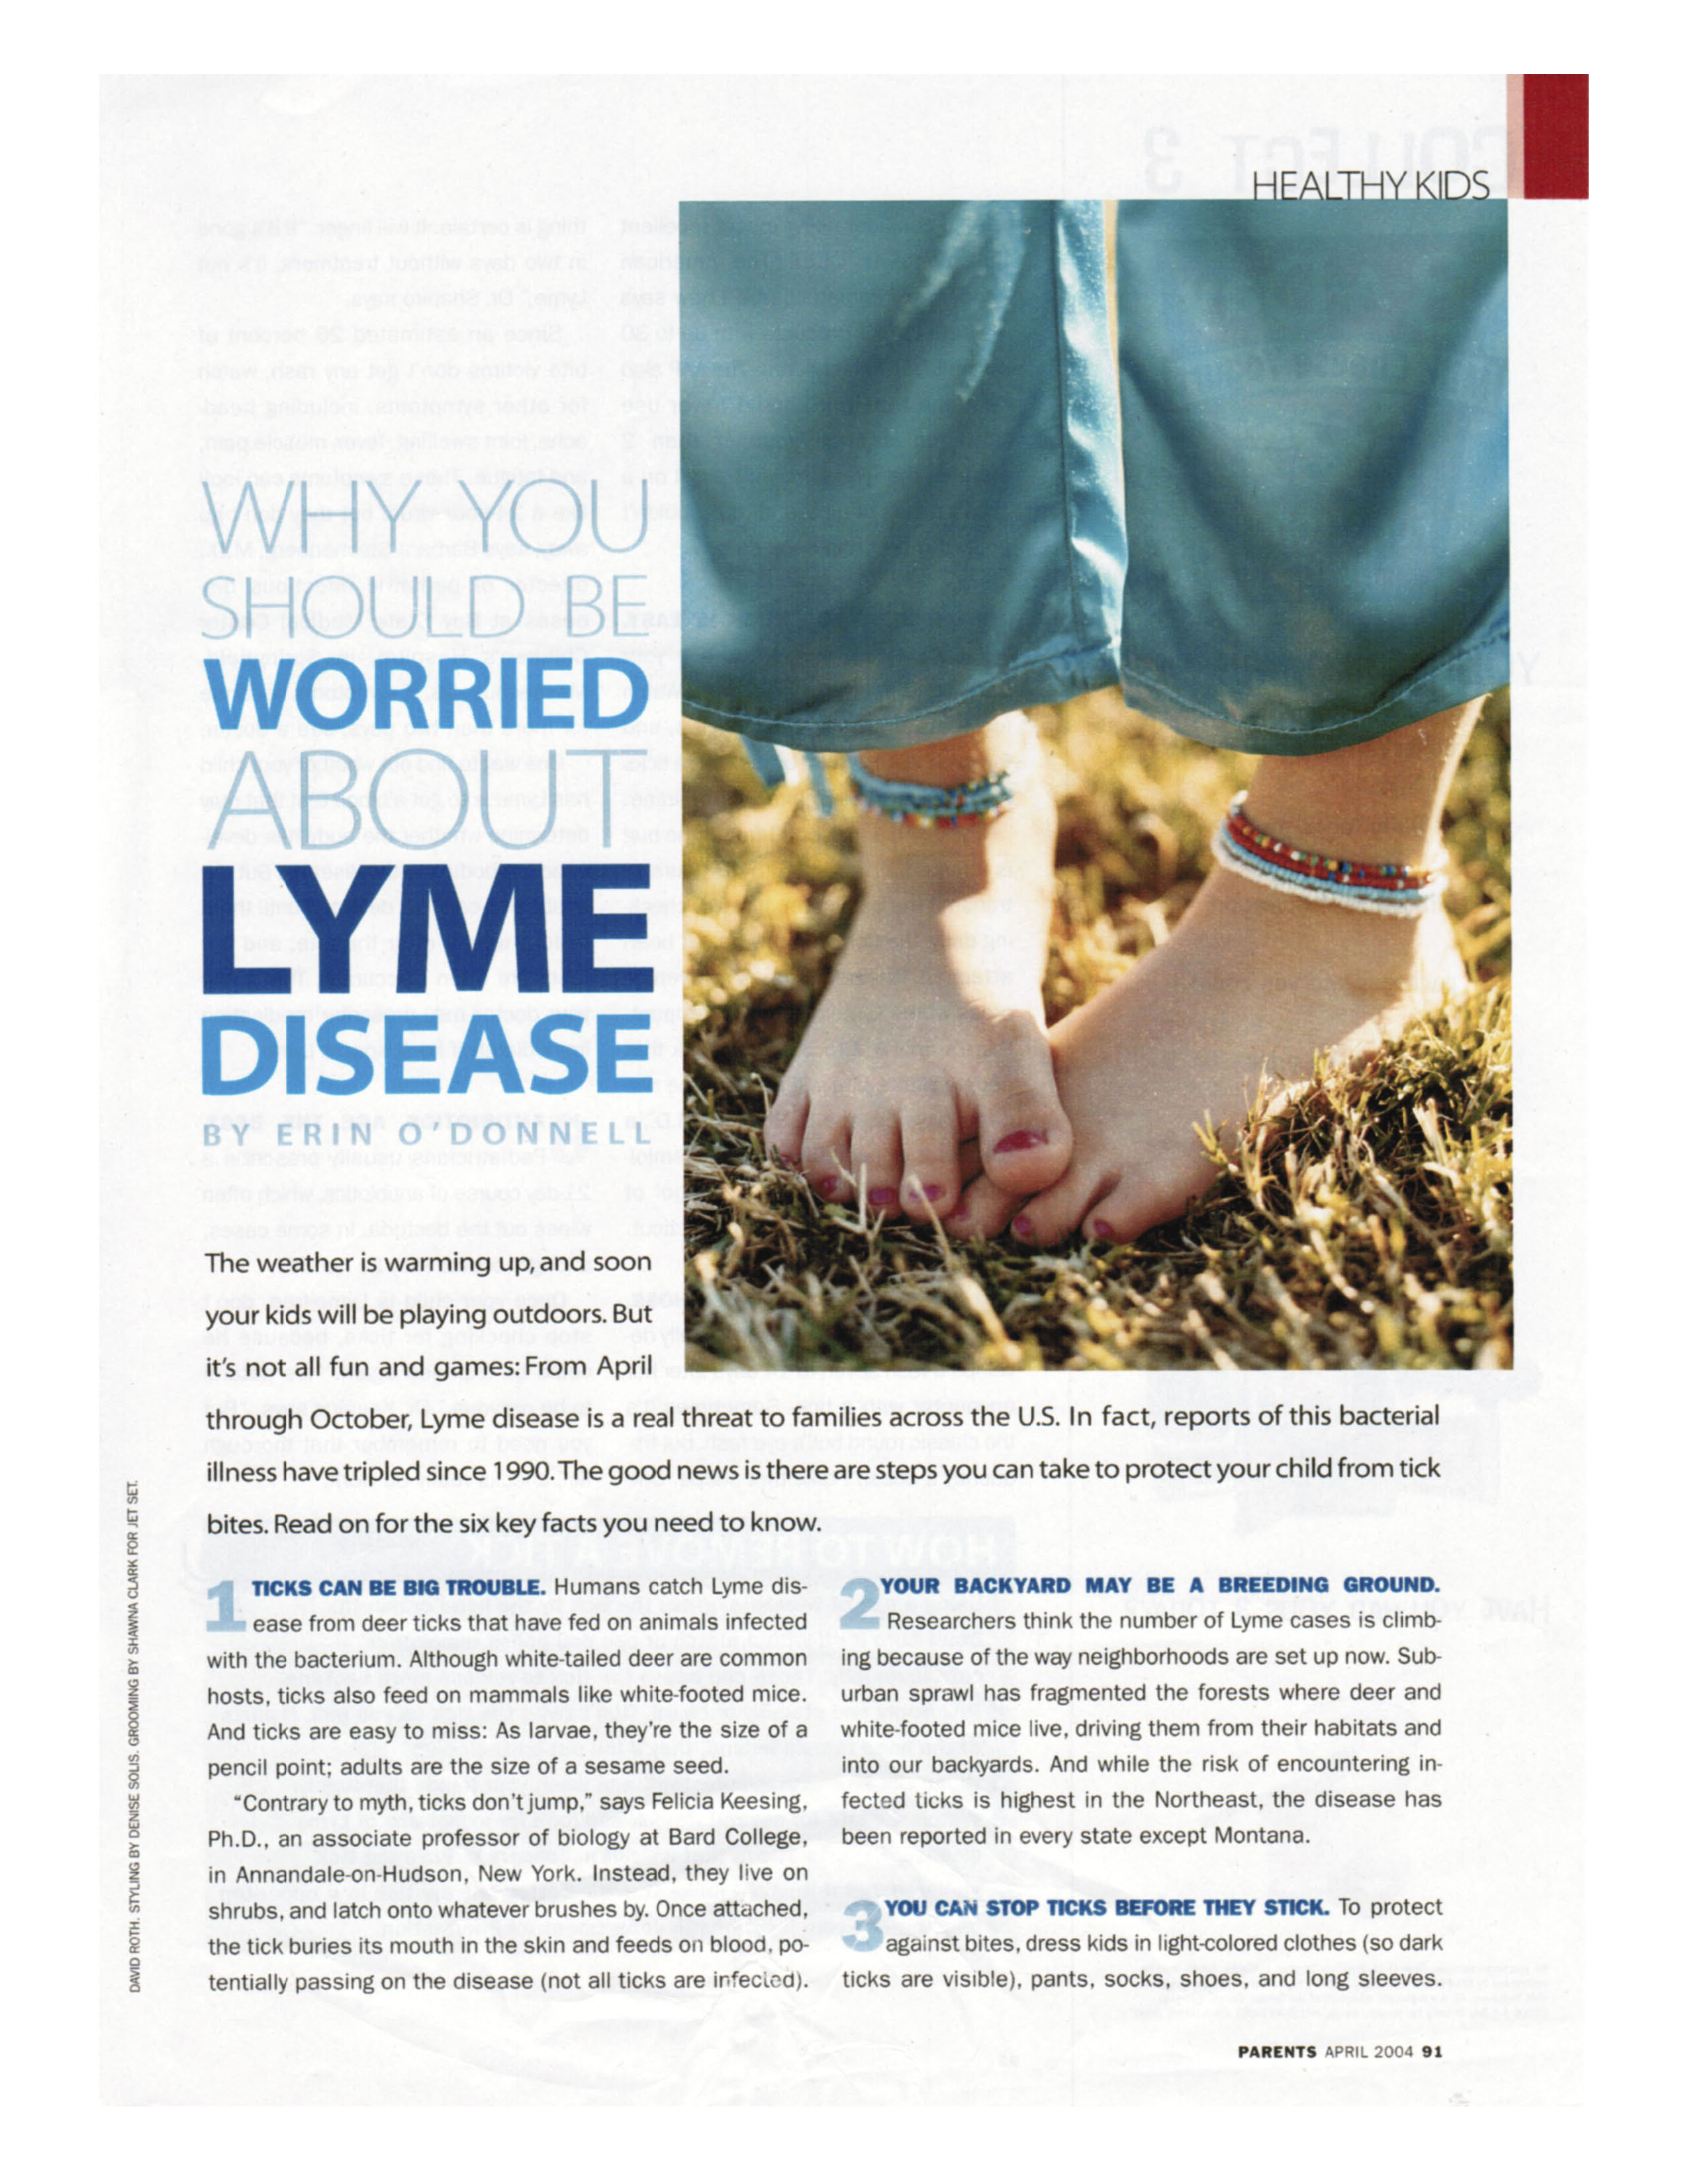 Why You Should Be Worried About Lyme Disease